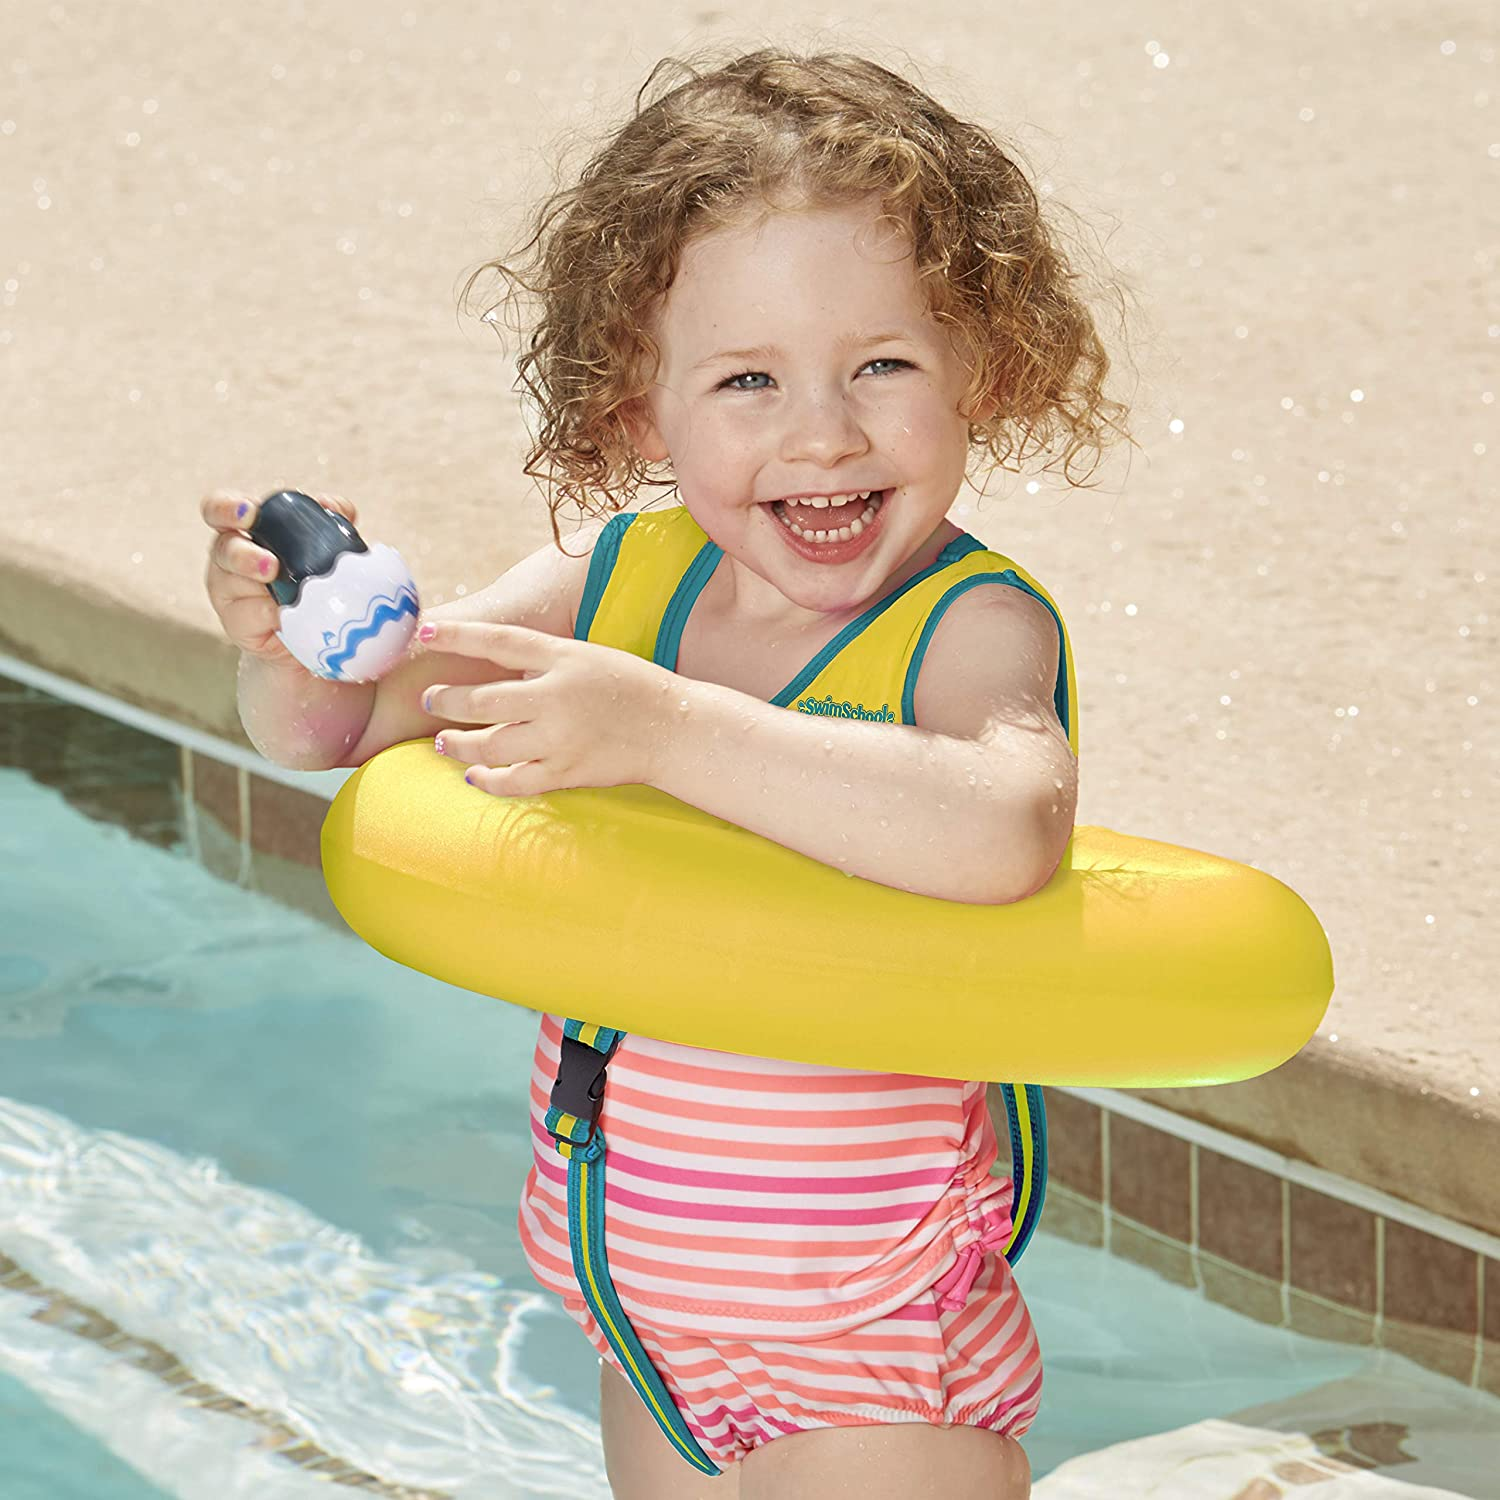 Top 9 Best Swim Floaties For Toddlers Reviews in 2020 1